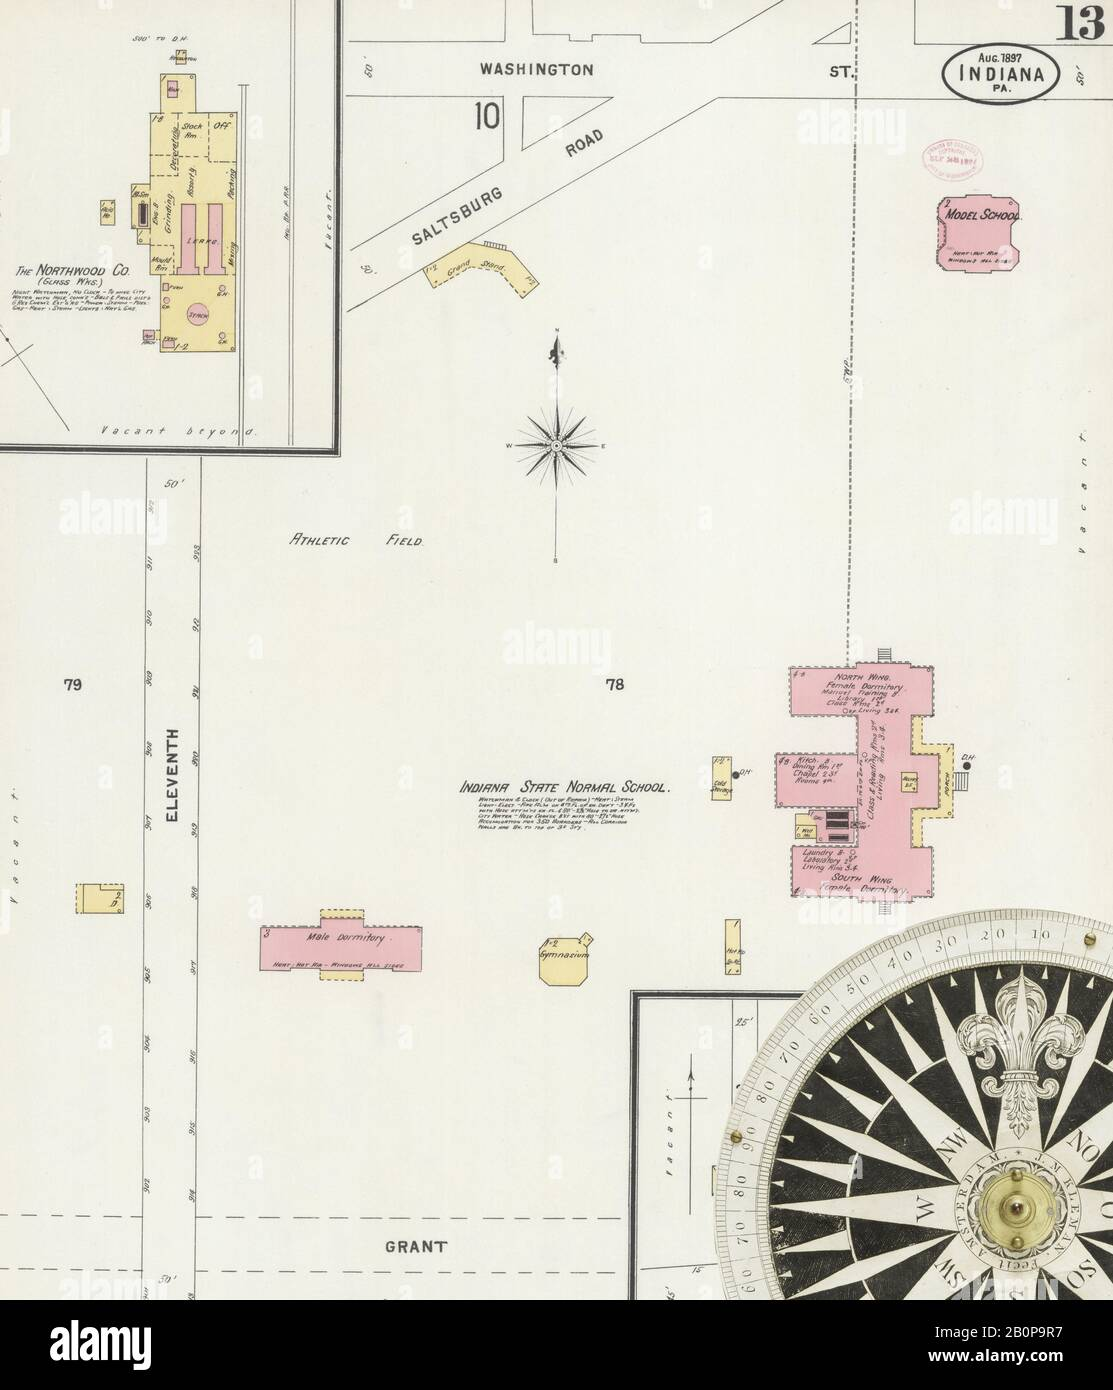 Image 13 of Sanborn Fire Insurance Map from Indiana, Indiana County, Pennsylvania. Aug 1897. 13 Sheet(s), America, street map with a Nineteenth Century compass Stock Photo